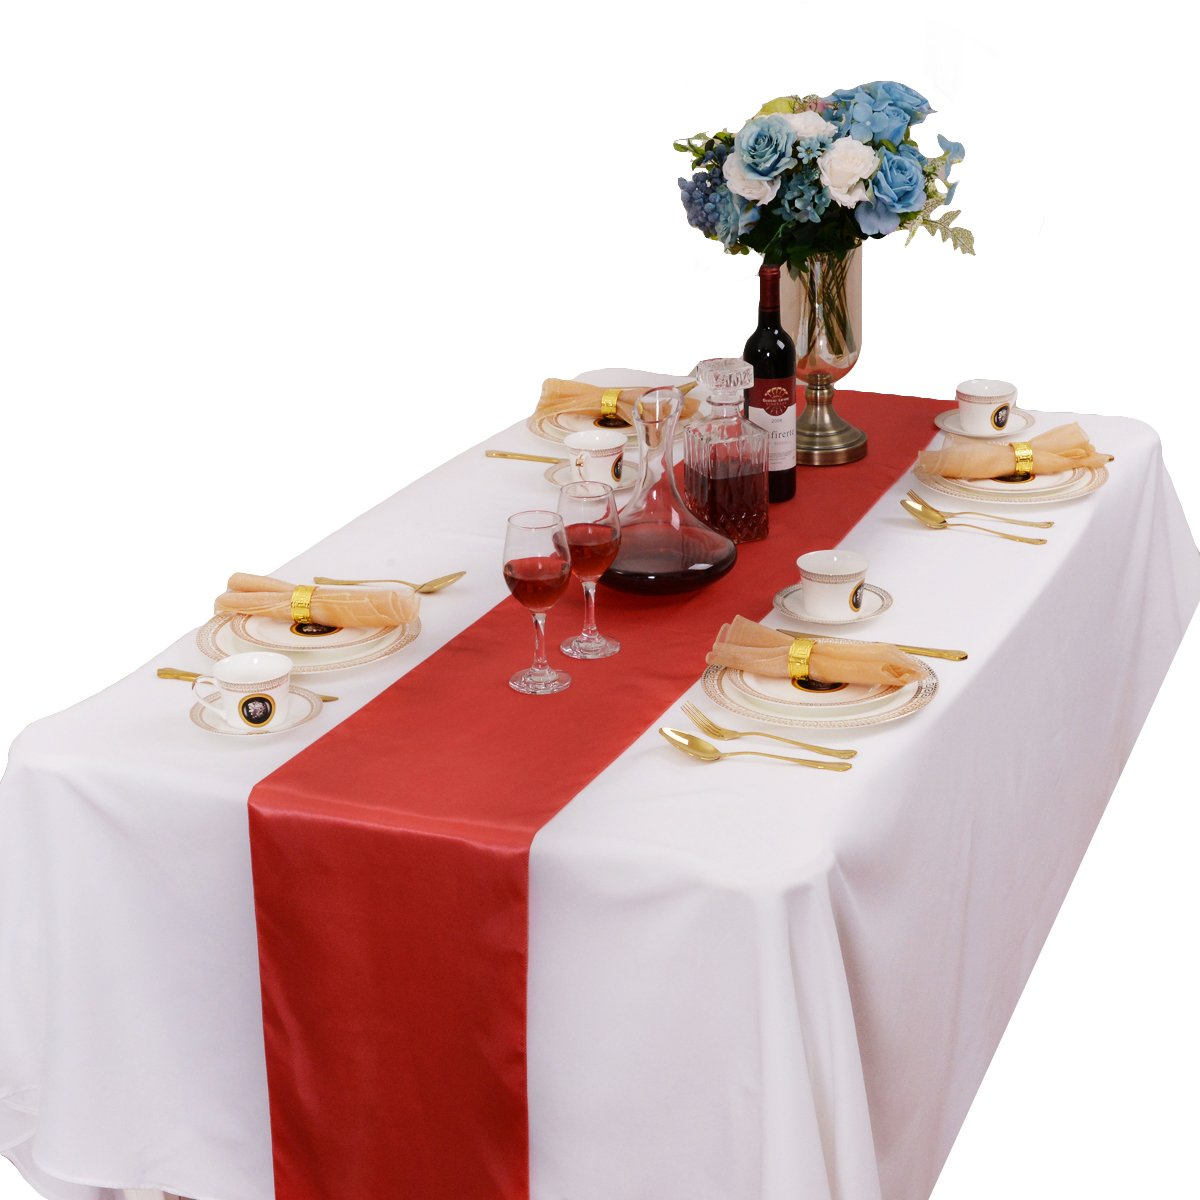 LOVWY 12 x 108 Inches Pack of 20 PCS Satin Table Runner for Wedding Party Engagement Event Birthday Graduation Banquet Decoration (Colors Optional) (Coral)